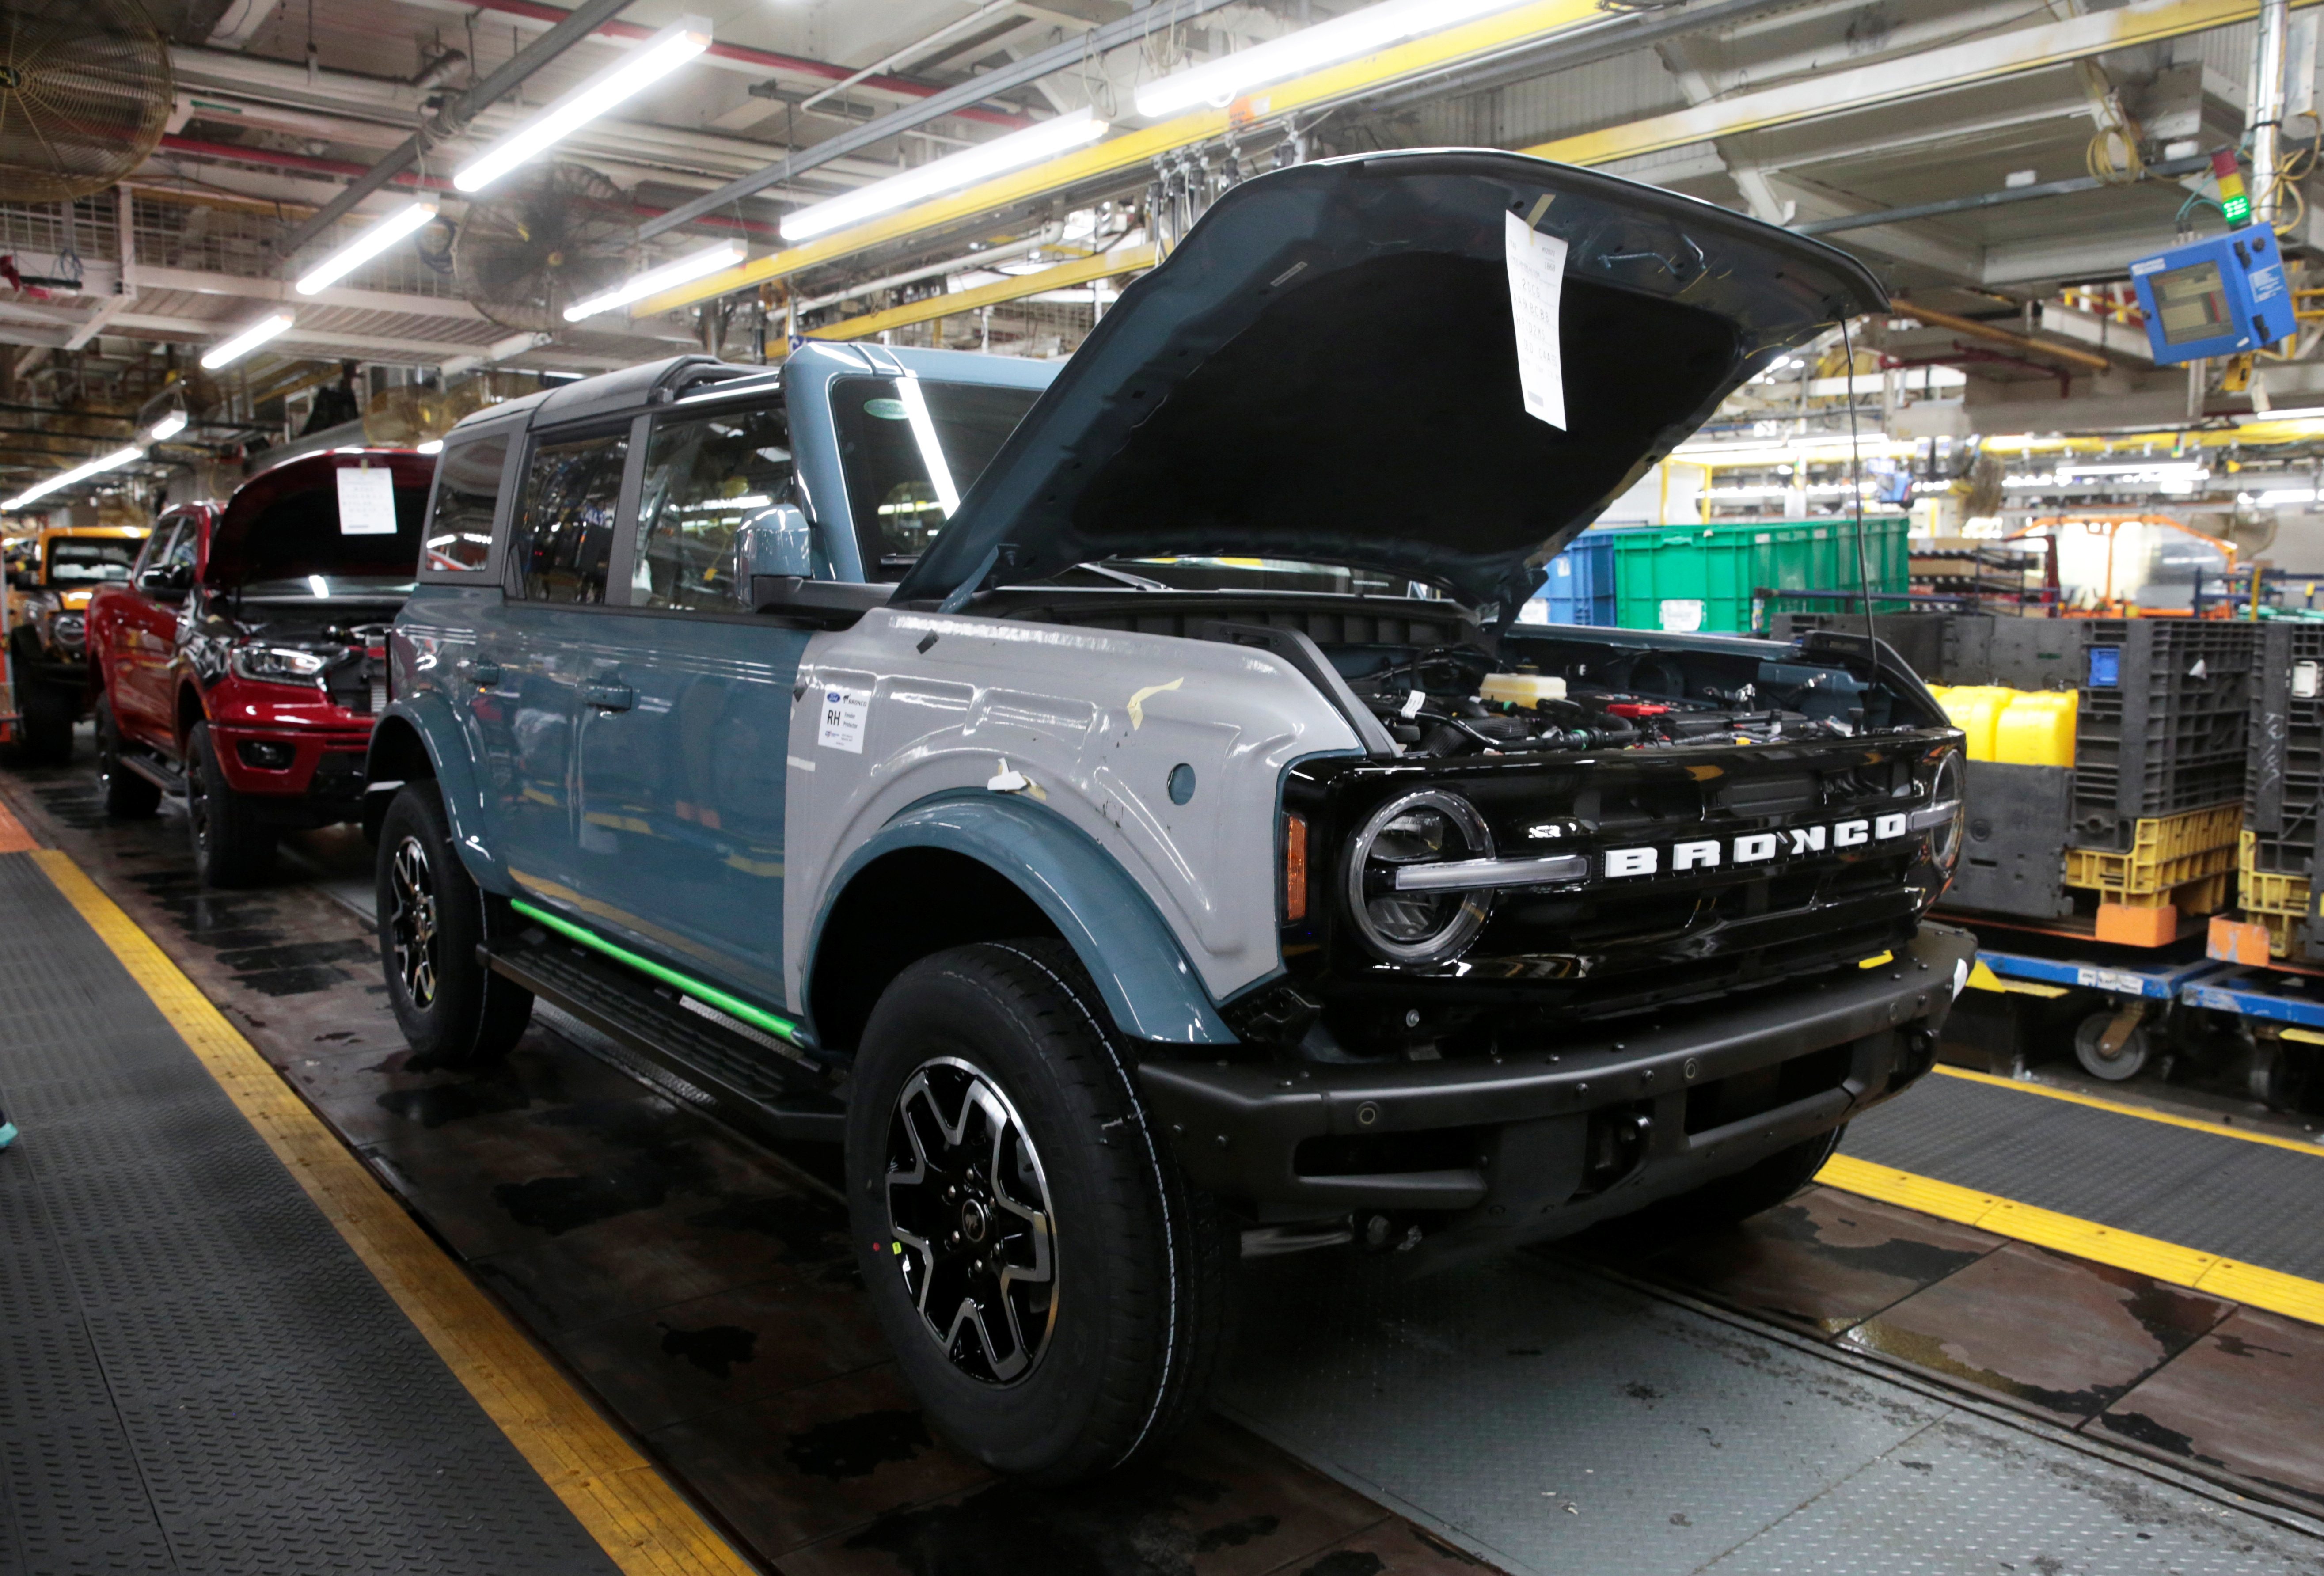 The Ford 2021 Bronco SUV is seen on the assembly line at Michigan Assembly Plant in Wayne, Michigan, U.S., June 14, 2021. REUTERS/Rebecca Cook